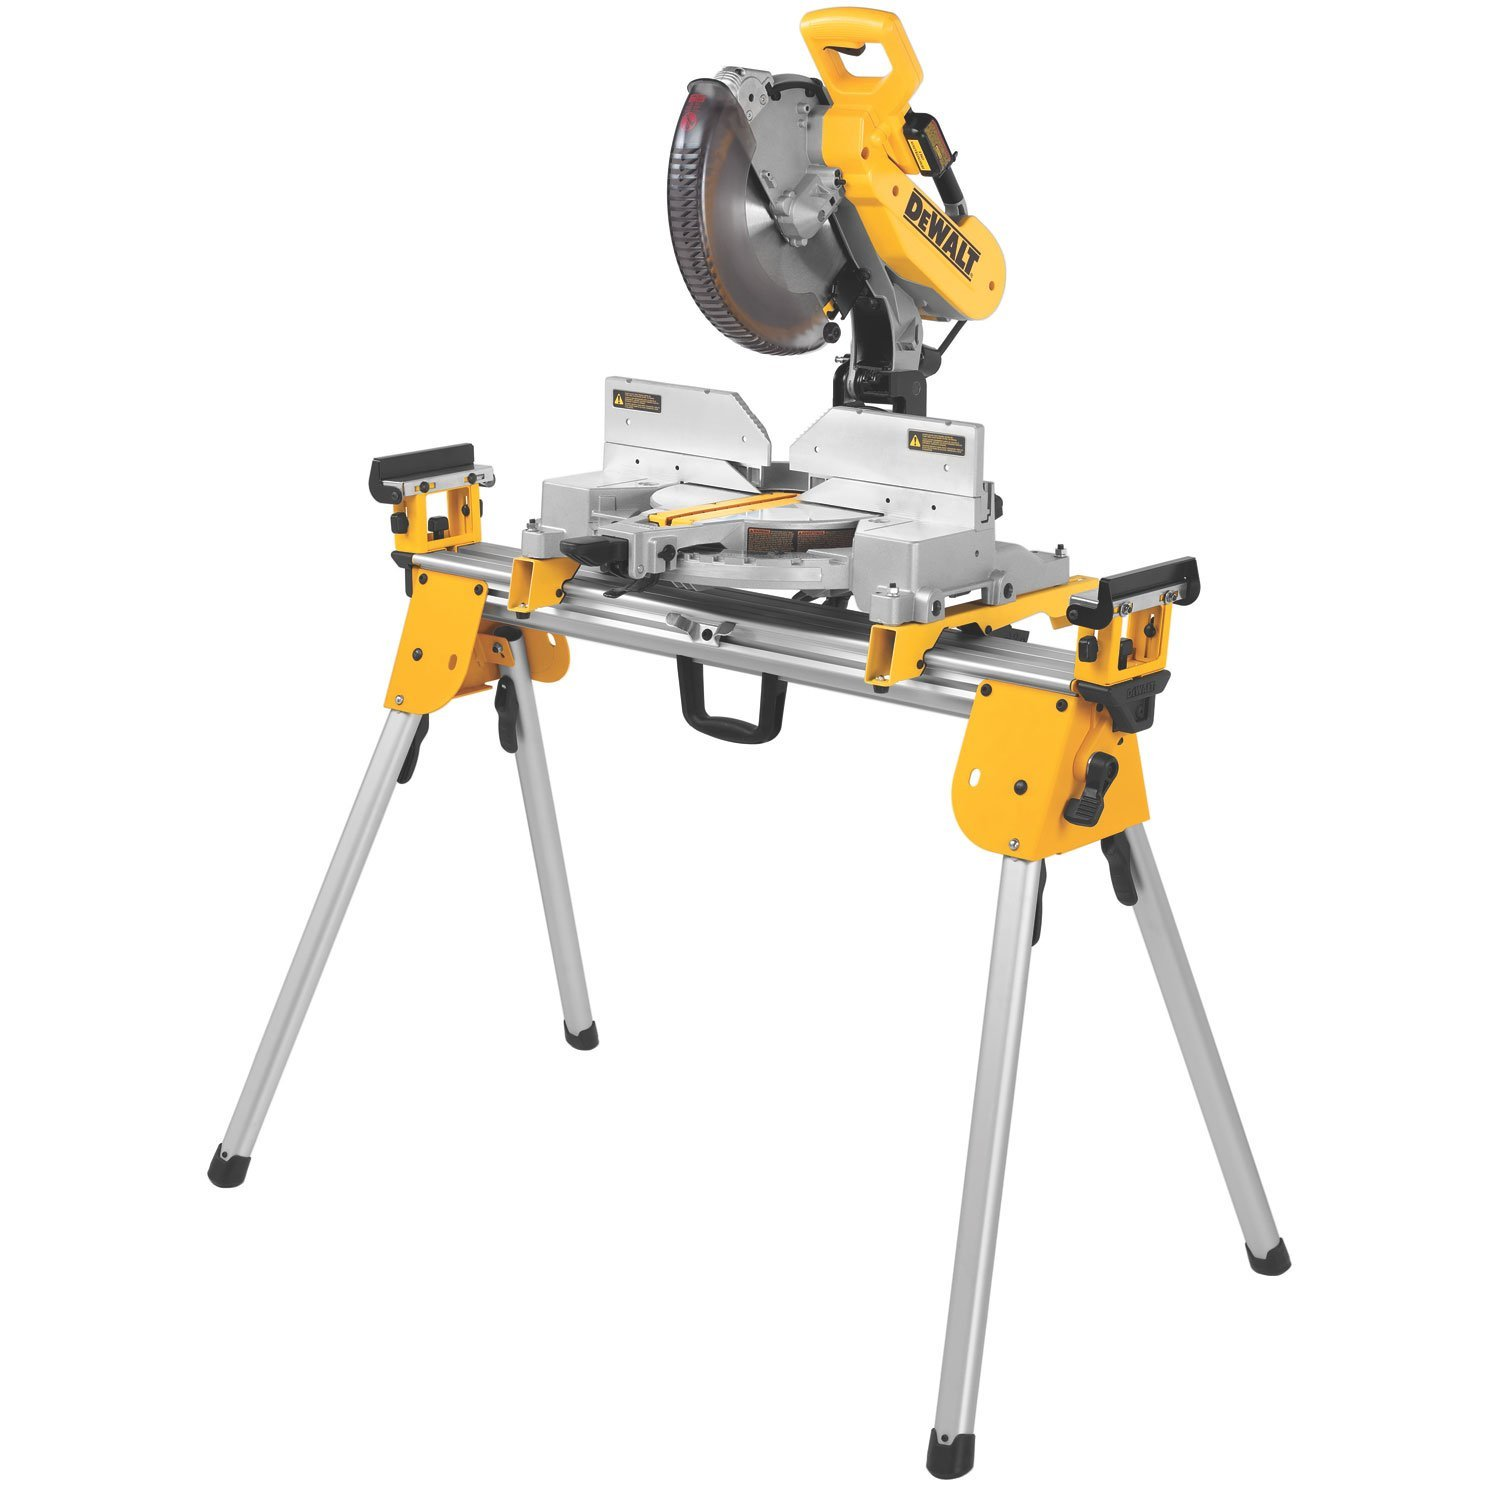 Dewalt dwx724 review miter saw stand for 12 dewalt table saw